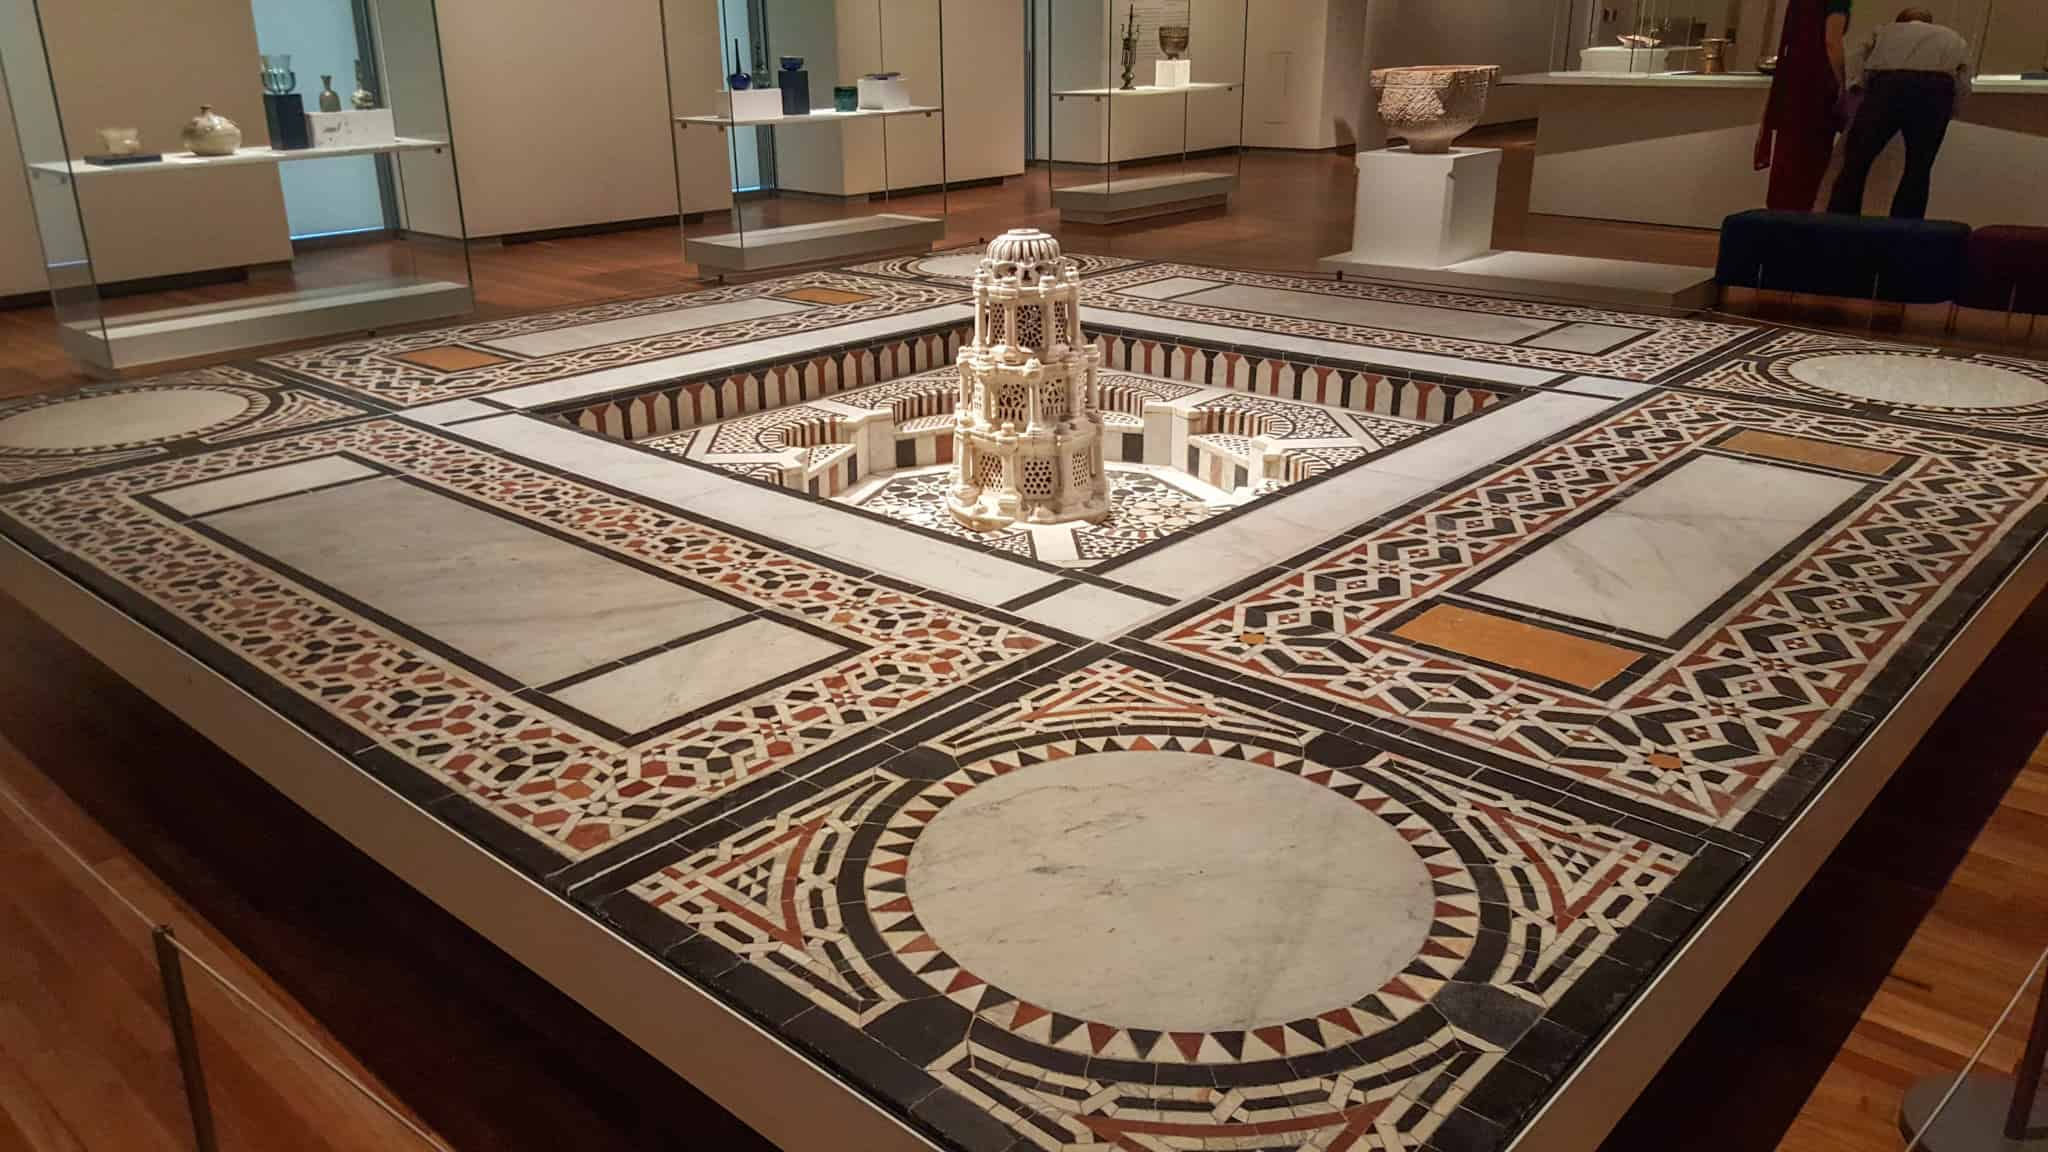 Visiting Aga Khan Museum is one of the free things to do in Toronto